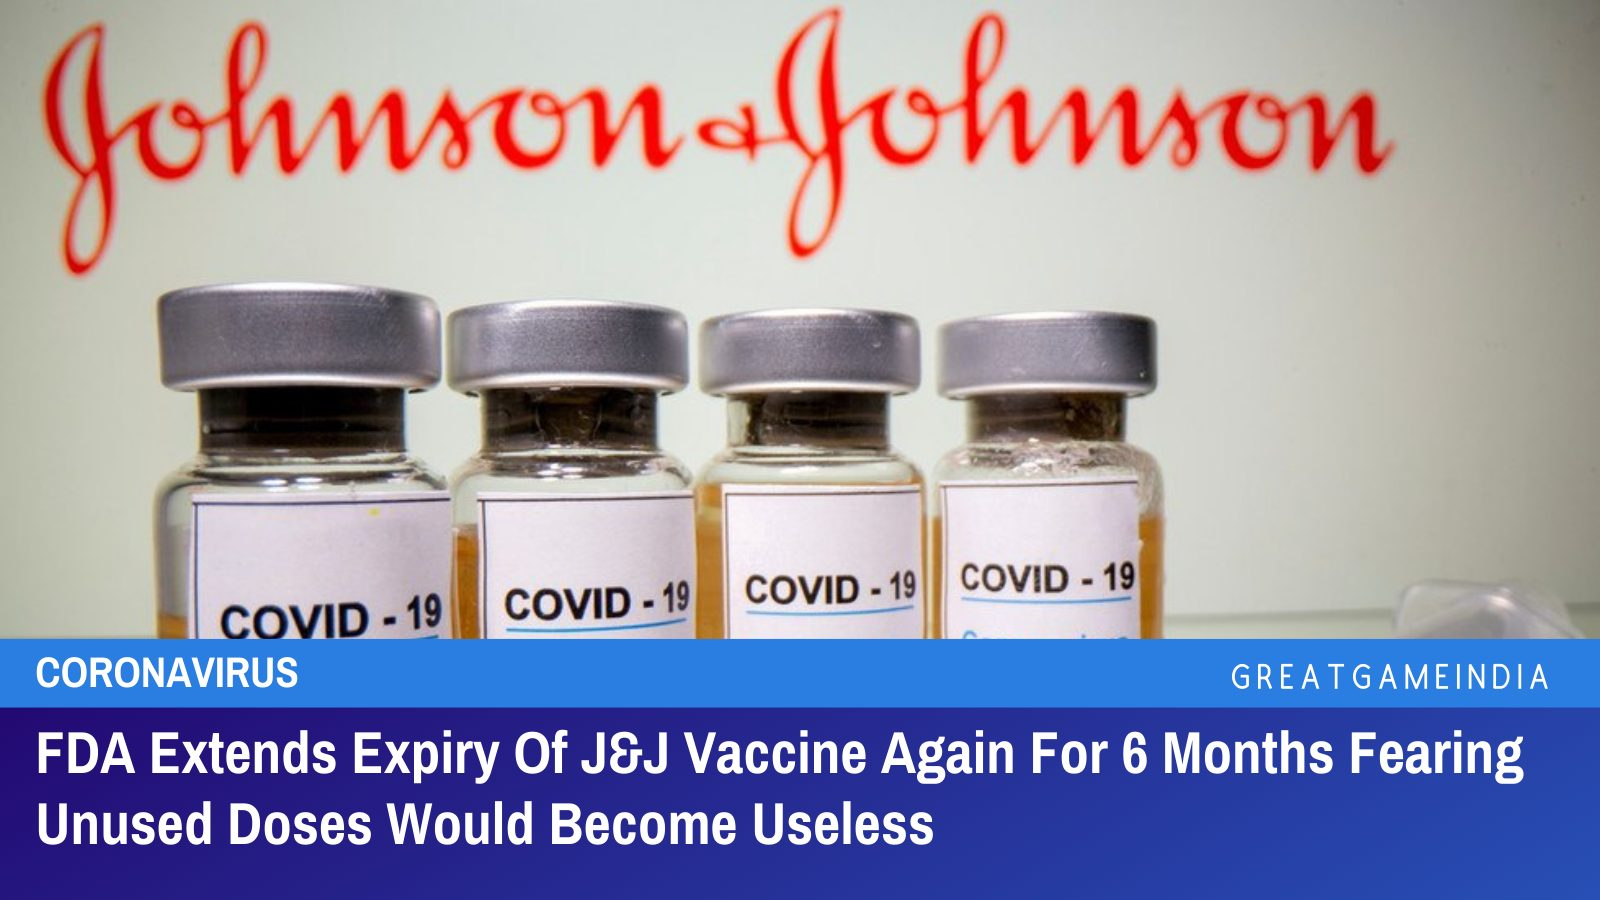 FDA Extends Expiry Of J&J Vaccine Again For 6 Months Fearing Unused Doses Would Become Useless